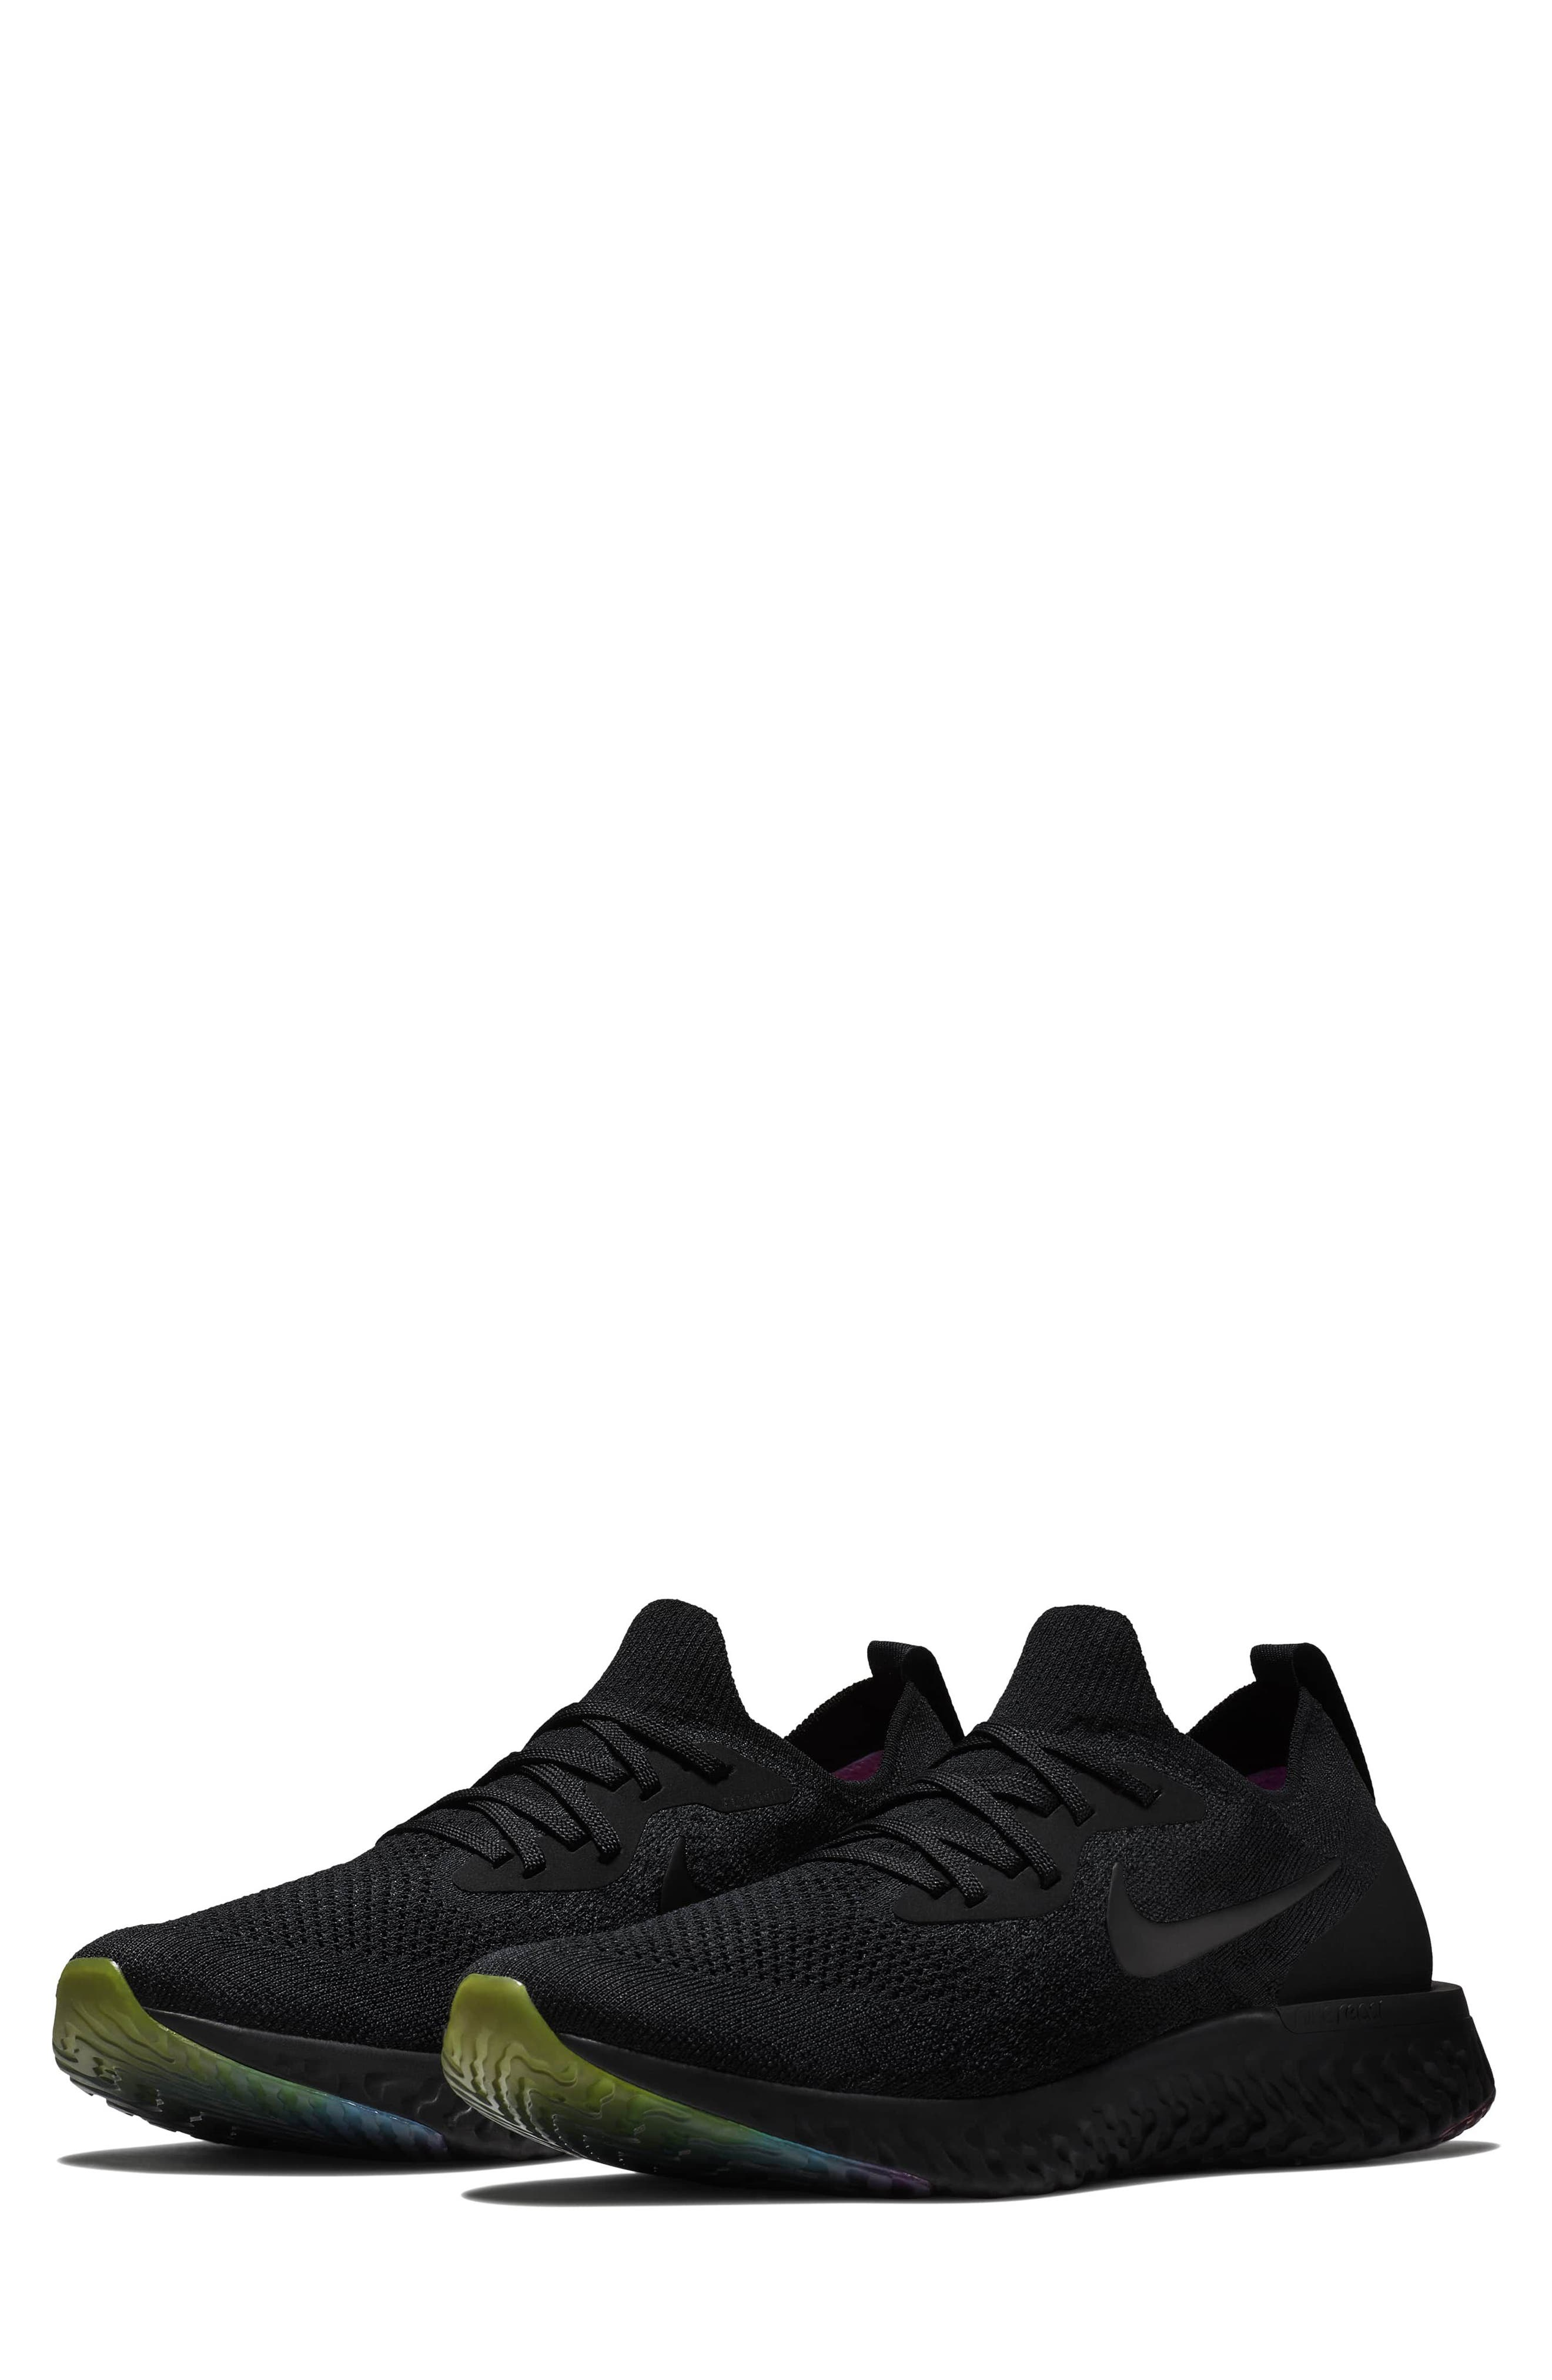 Sneakers for Women On Sale, Black, Leather, 2017, 3.5 4.5 5.5 Chloé